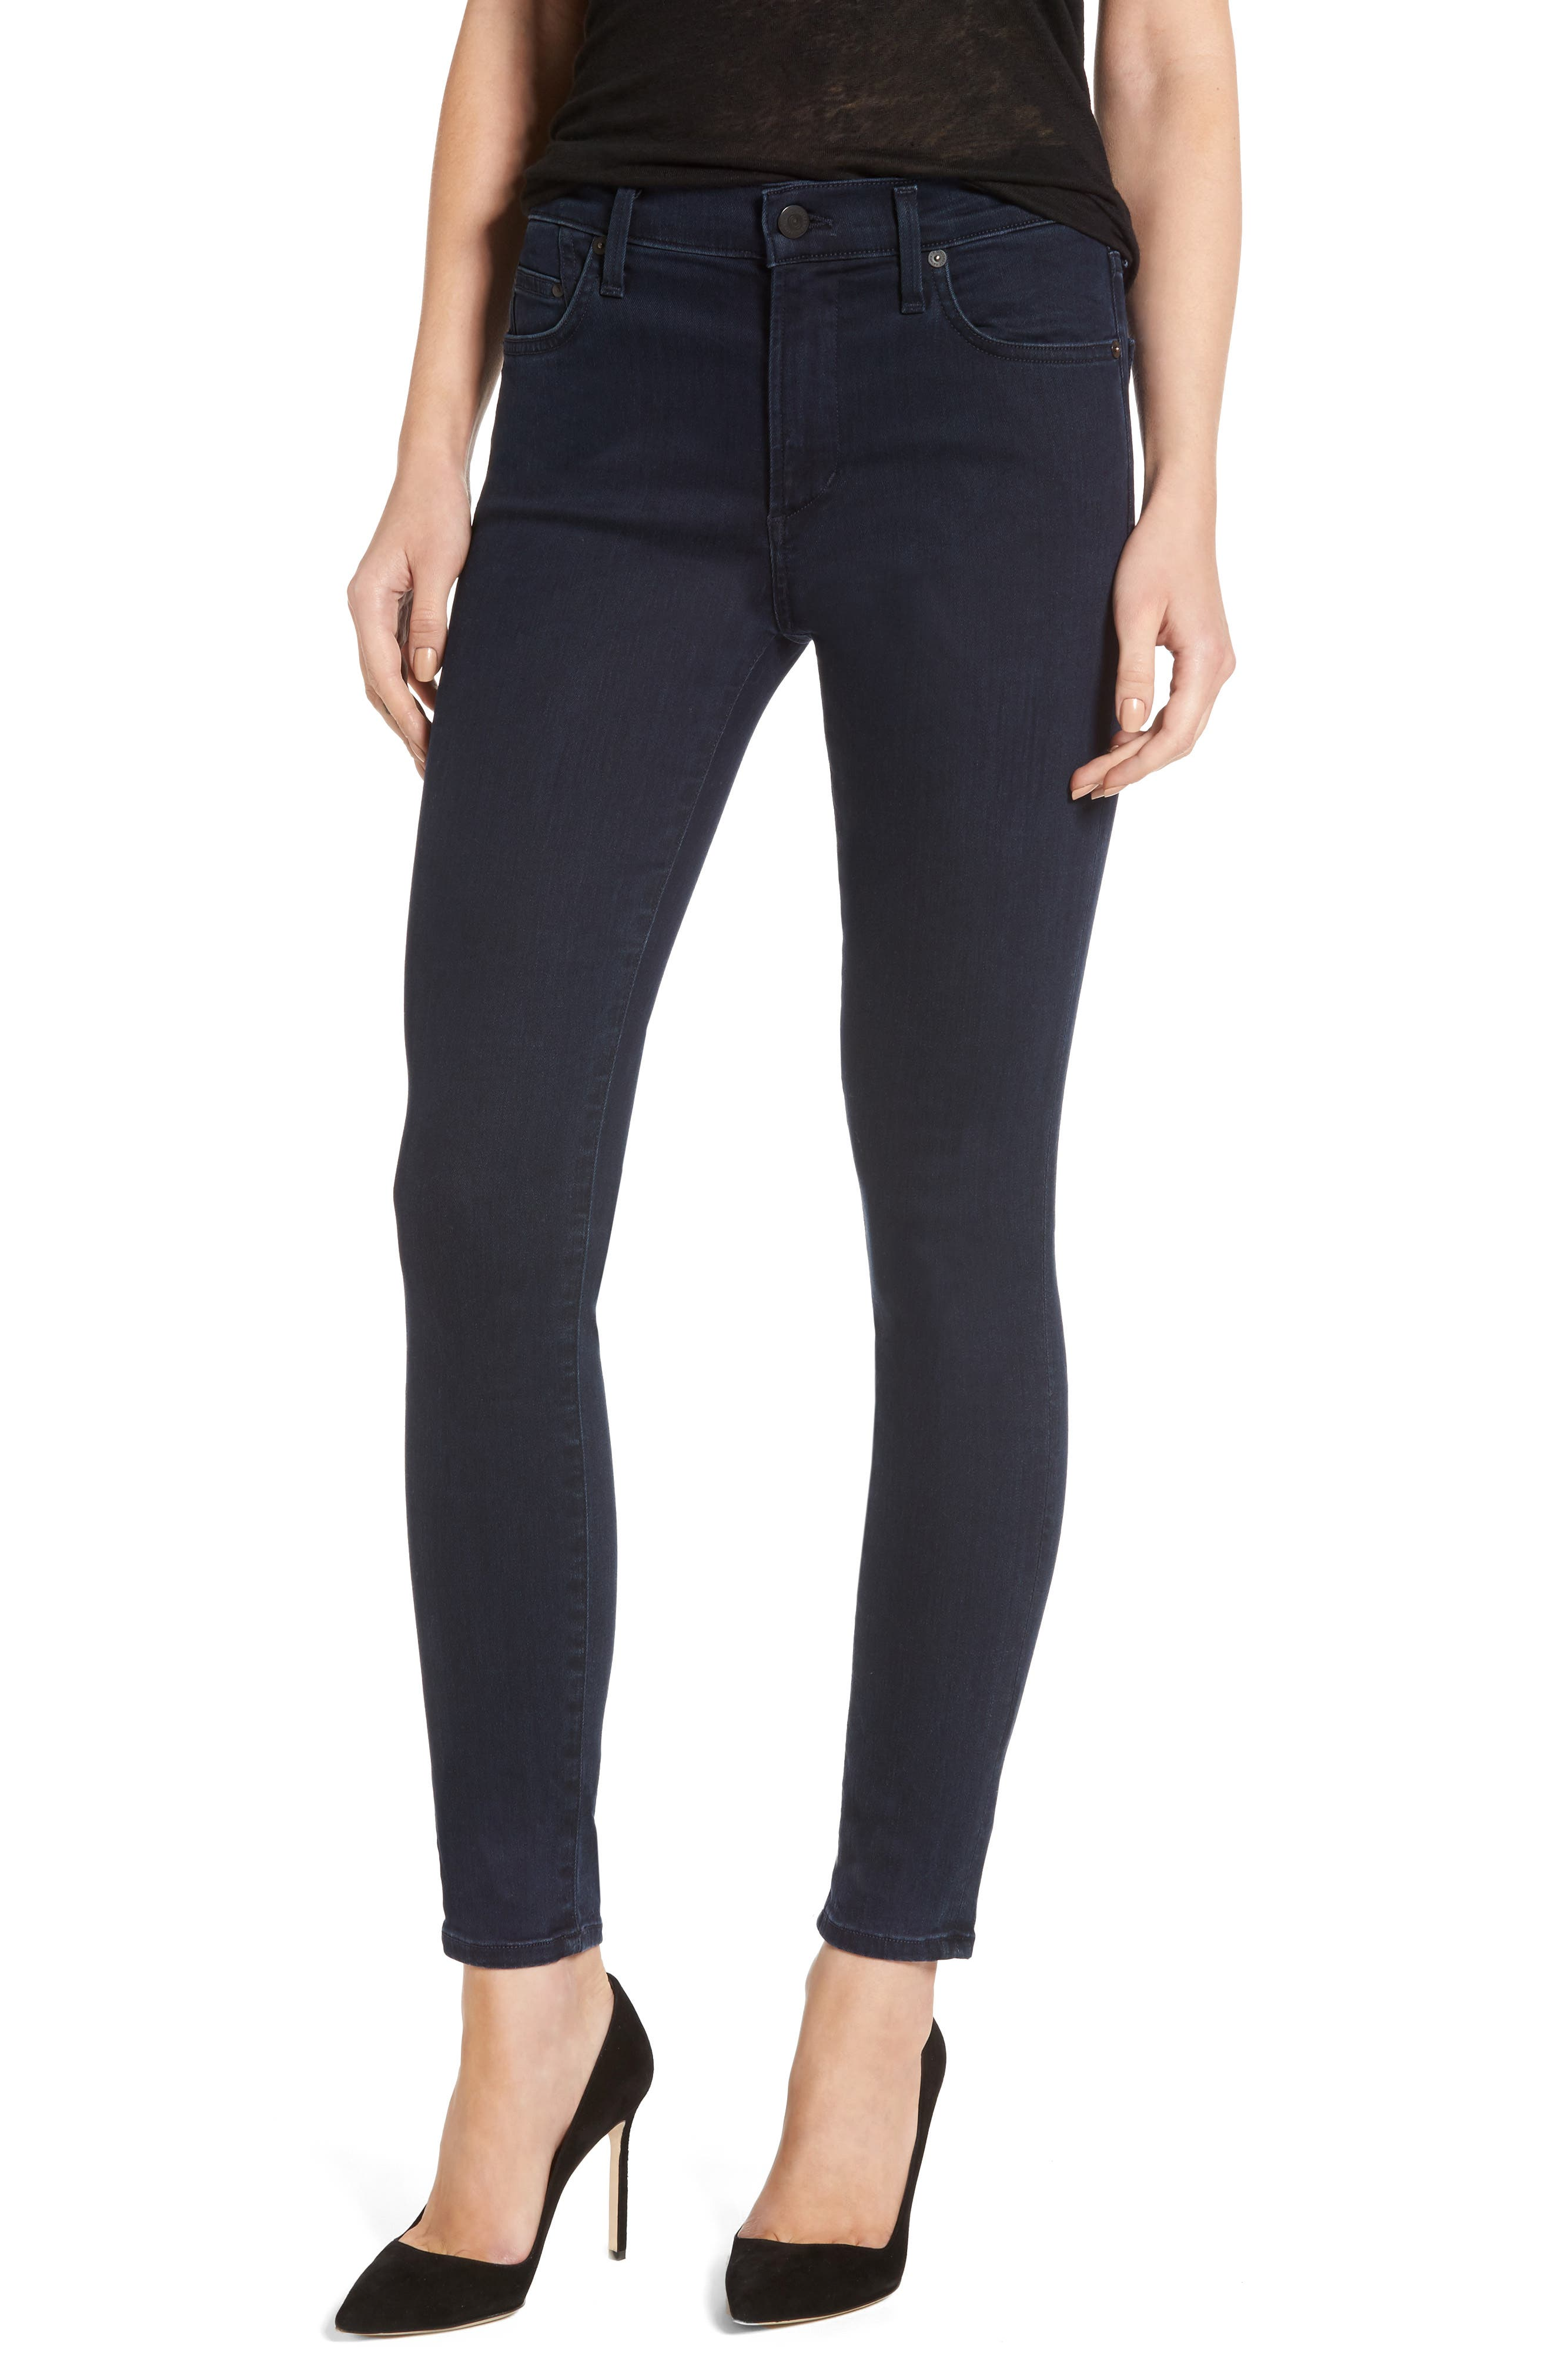 Rocket High Waist Skinny Jeans,                             Main thumbnail 1, color,                             Ozone Ink